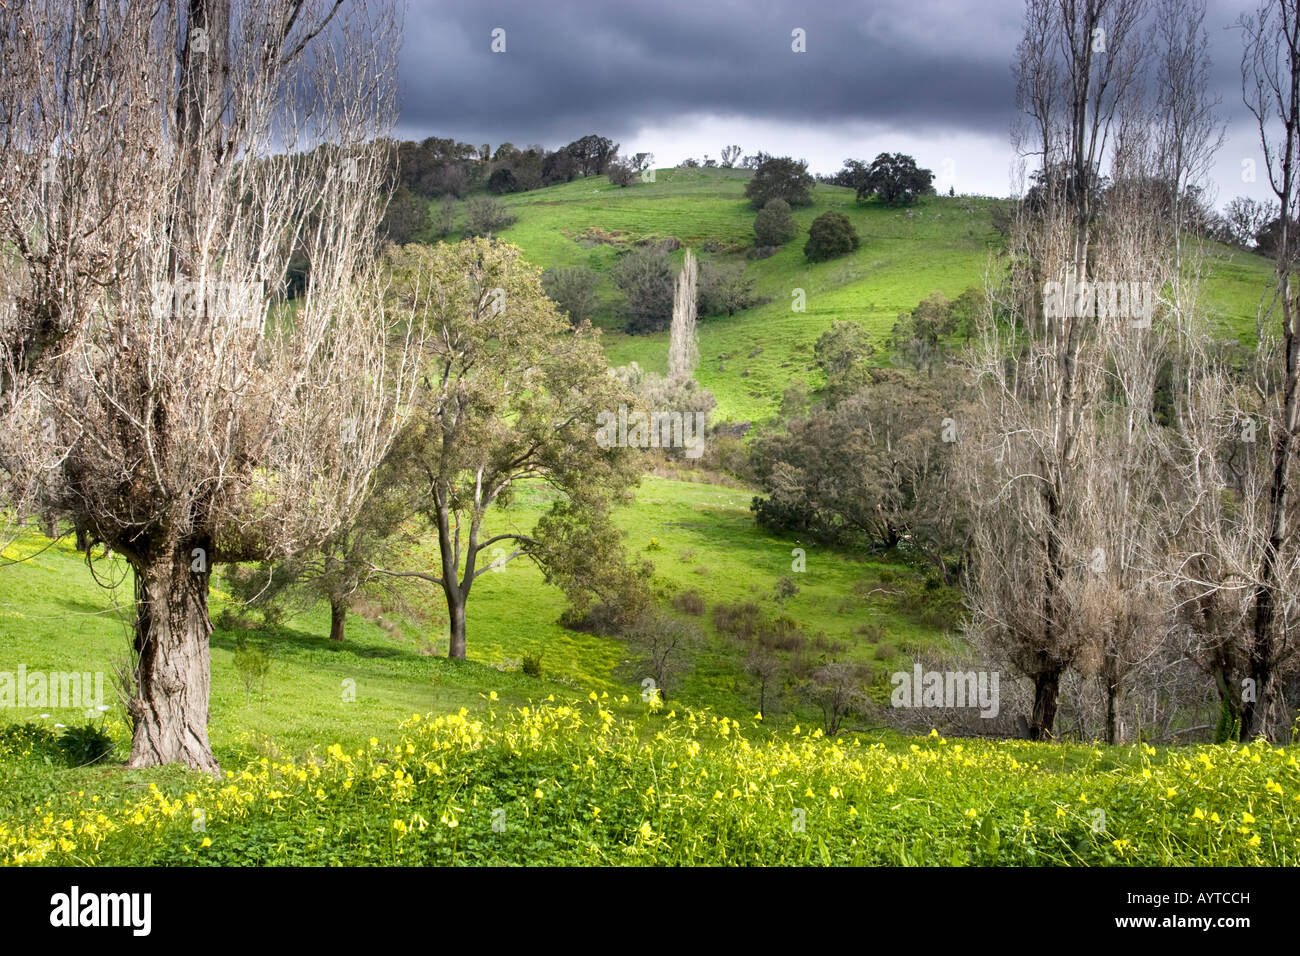 Yellow flowers growing in a lush green valley at Wungong Gorge in Perth, Western Australia - Stock Image